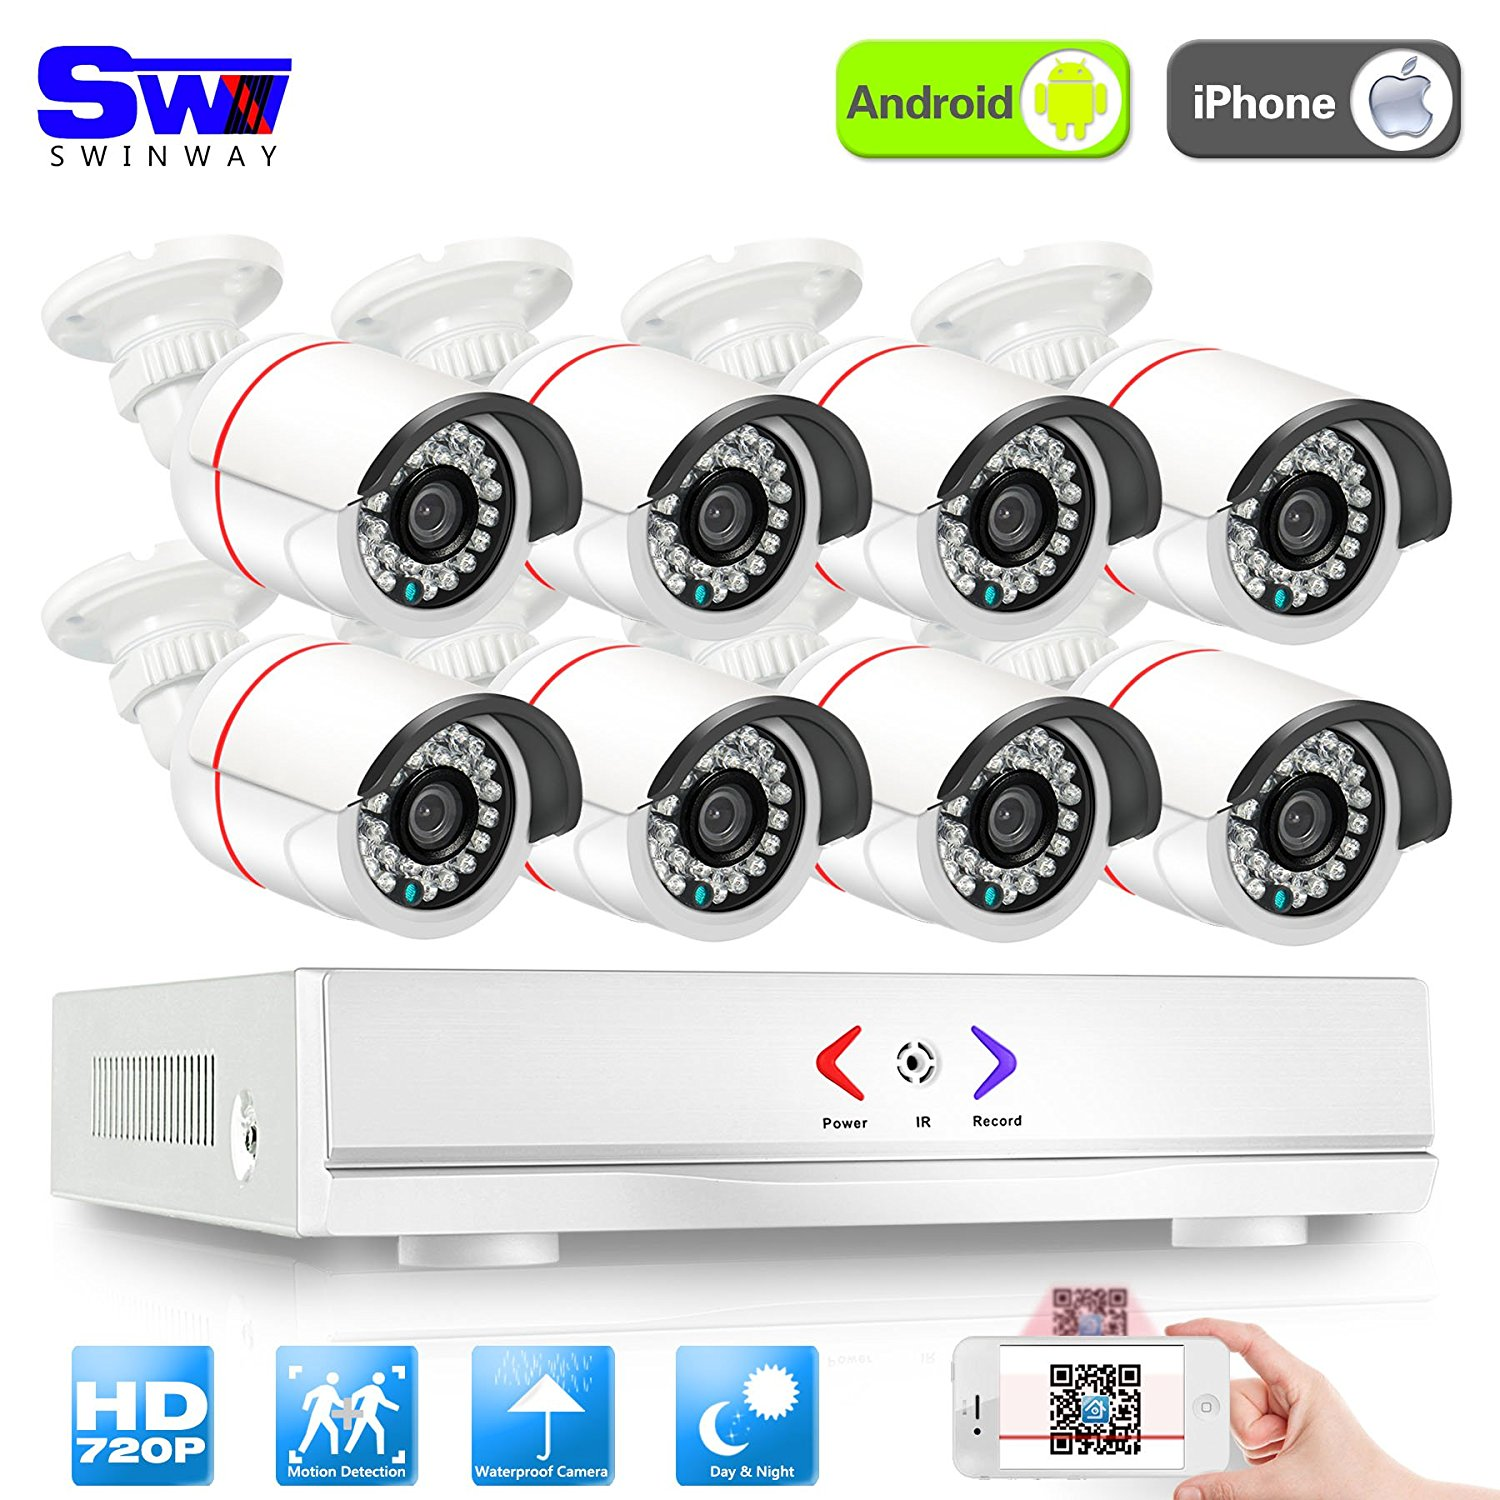 SW Swinway 8 Bullet Cameras AHD 8Ch1800TVL CCTV Security System AHD DVR Digital Video Recorder Kit Motion Detection for DVR CCTV Surveillance Security camera System Without Hard Disk